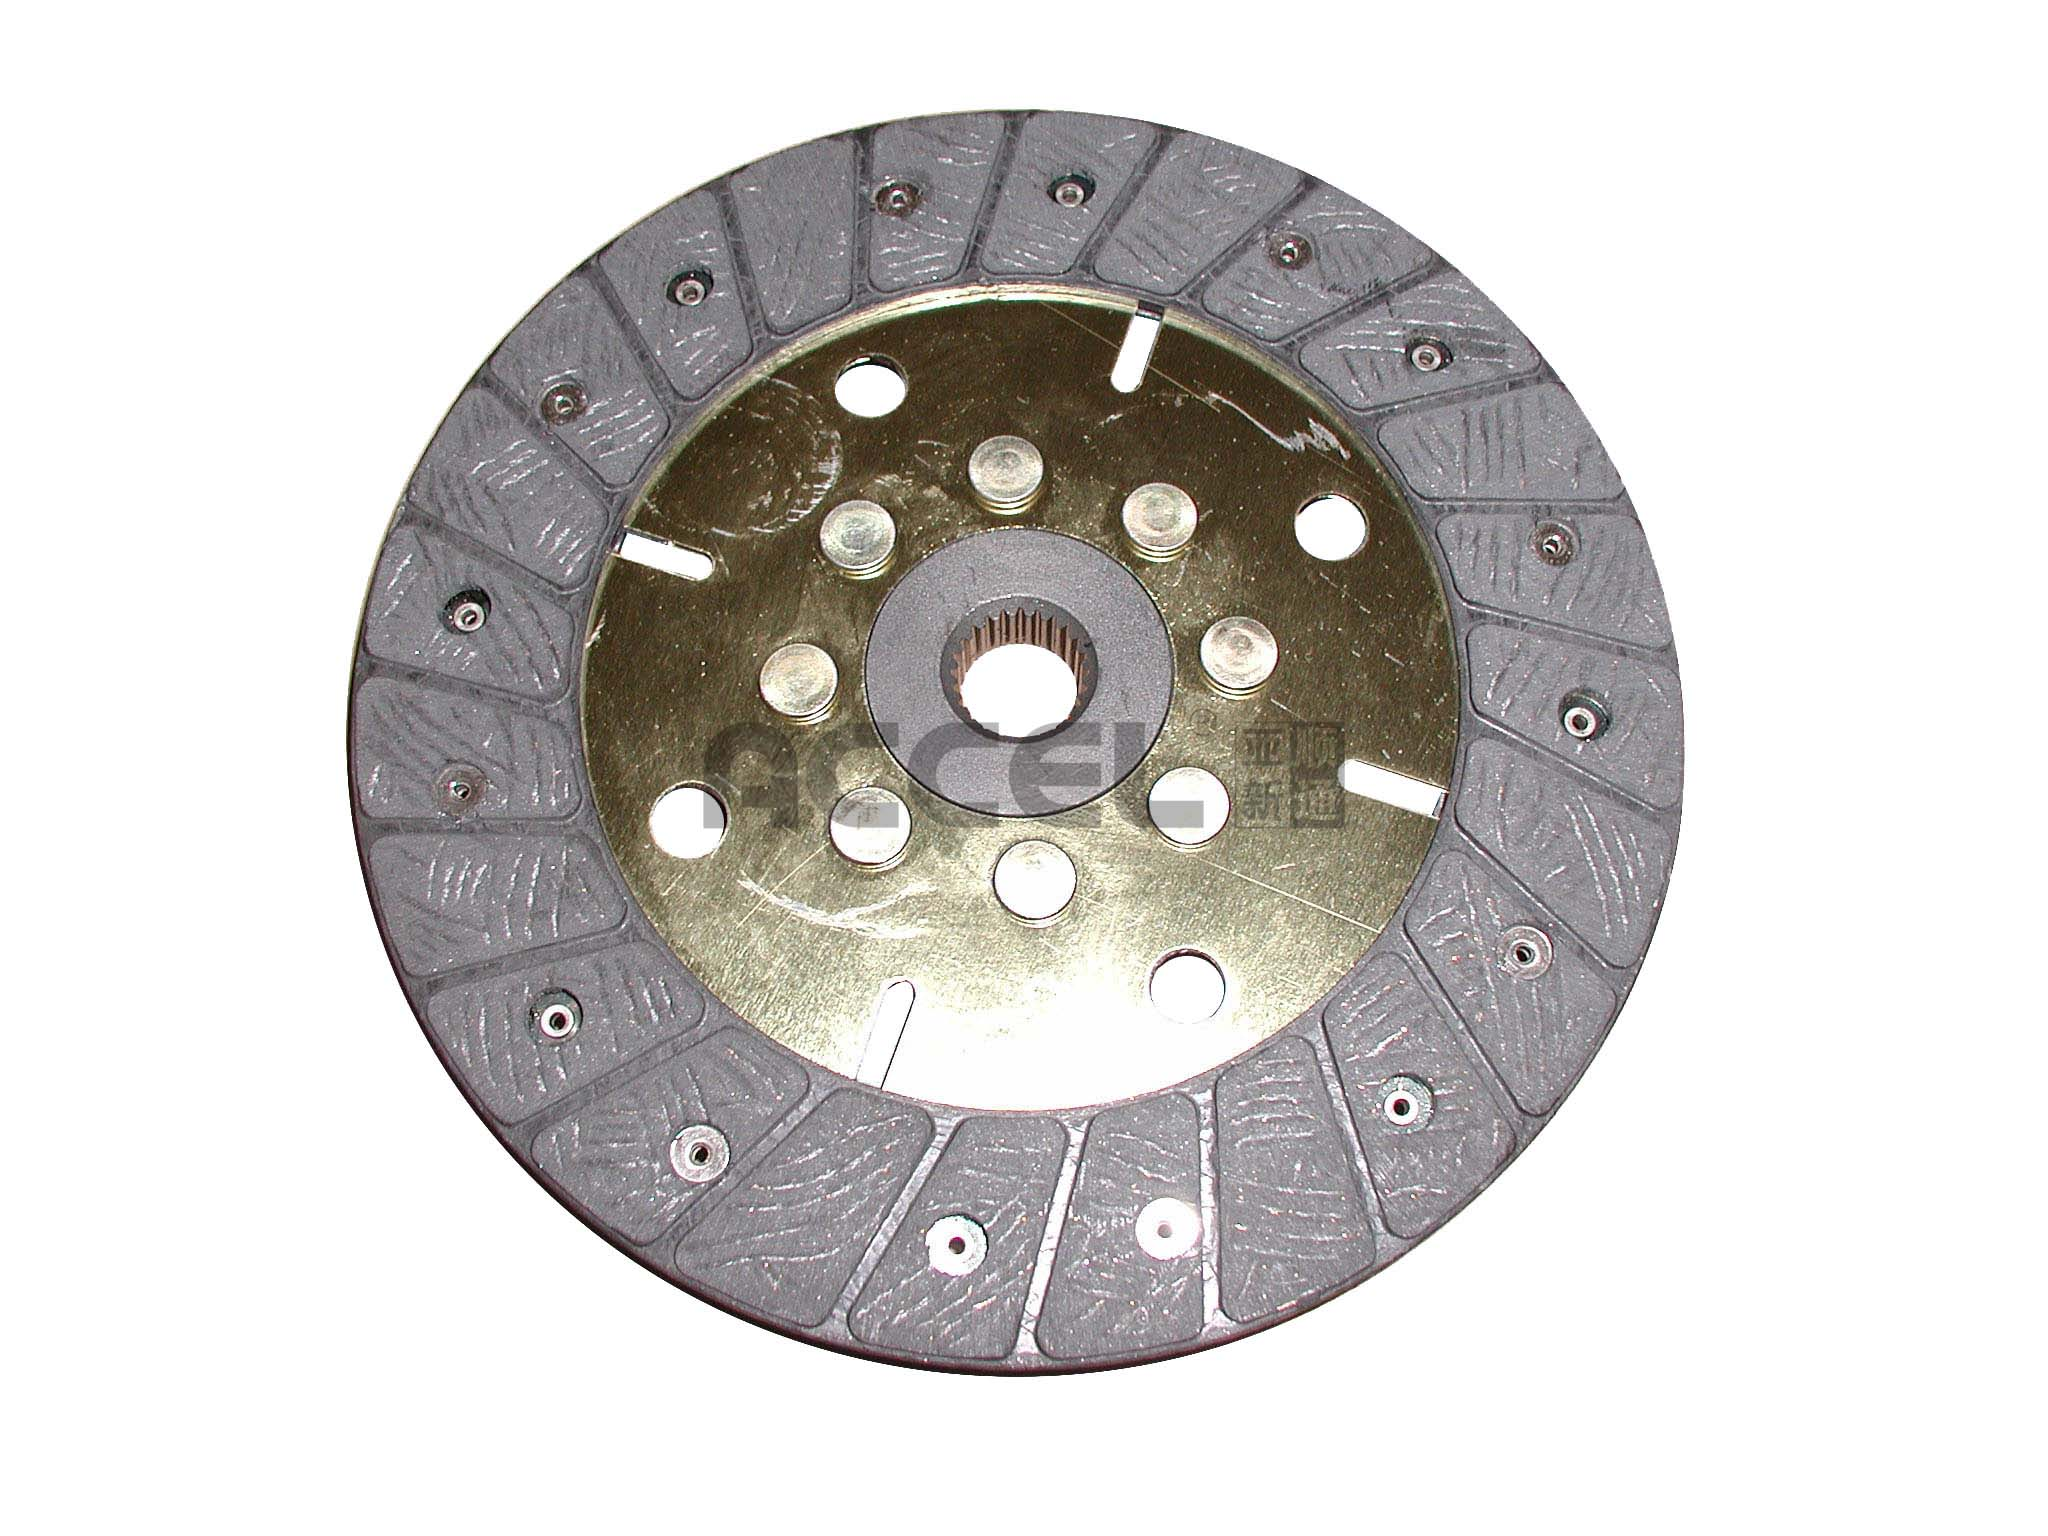 clutch disc oe null 200 130 24 20 6 arc 015 racing car cl1387 racing car clutch disc oe null 200 130 24 20 6 arc 015 racing car cl1387 racing car